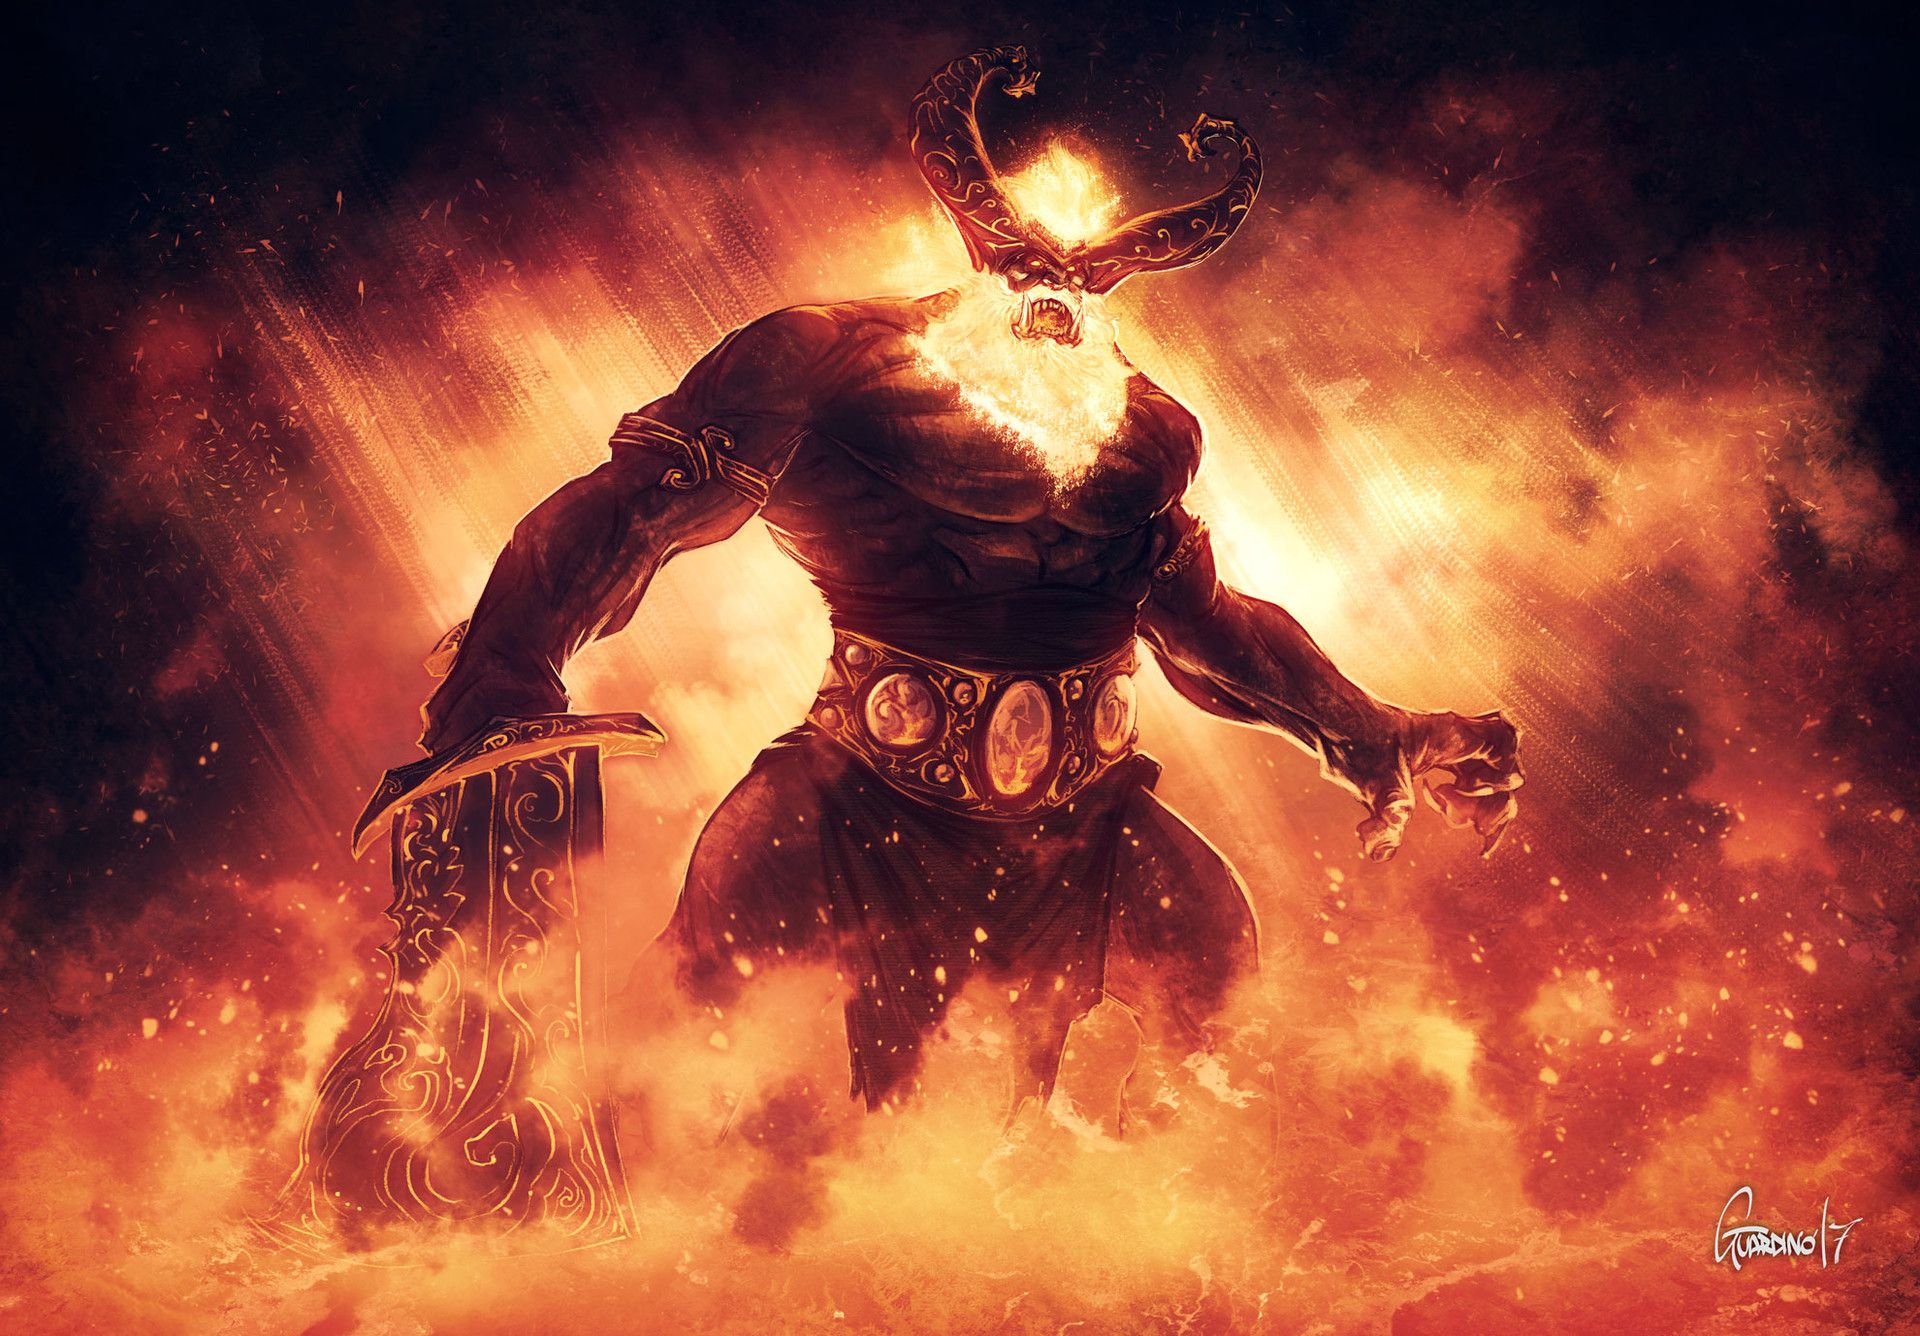 Image of the Fire Giant Surtr